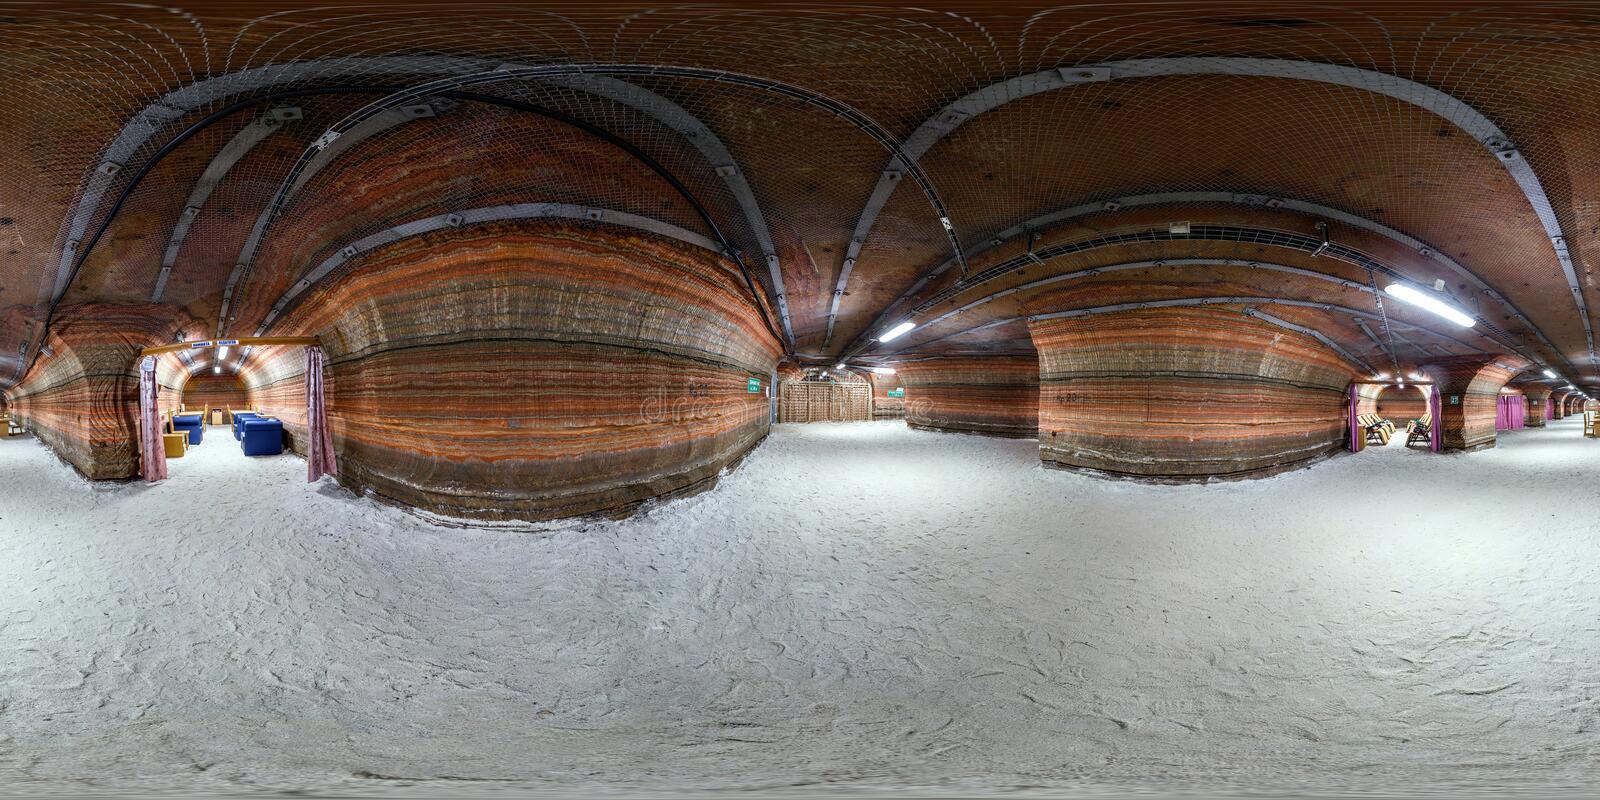 SOLIGORSK , BELARUS - SEPTEMBER 15, 2013: Interior in hospital caving in the cave of the potassium salt, full 360 degree panorama. In equirectangular spherical royalty free stock image